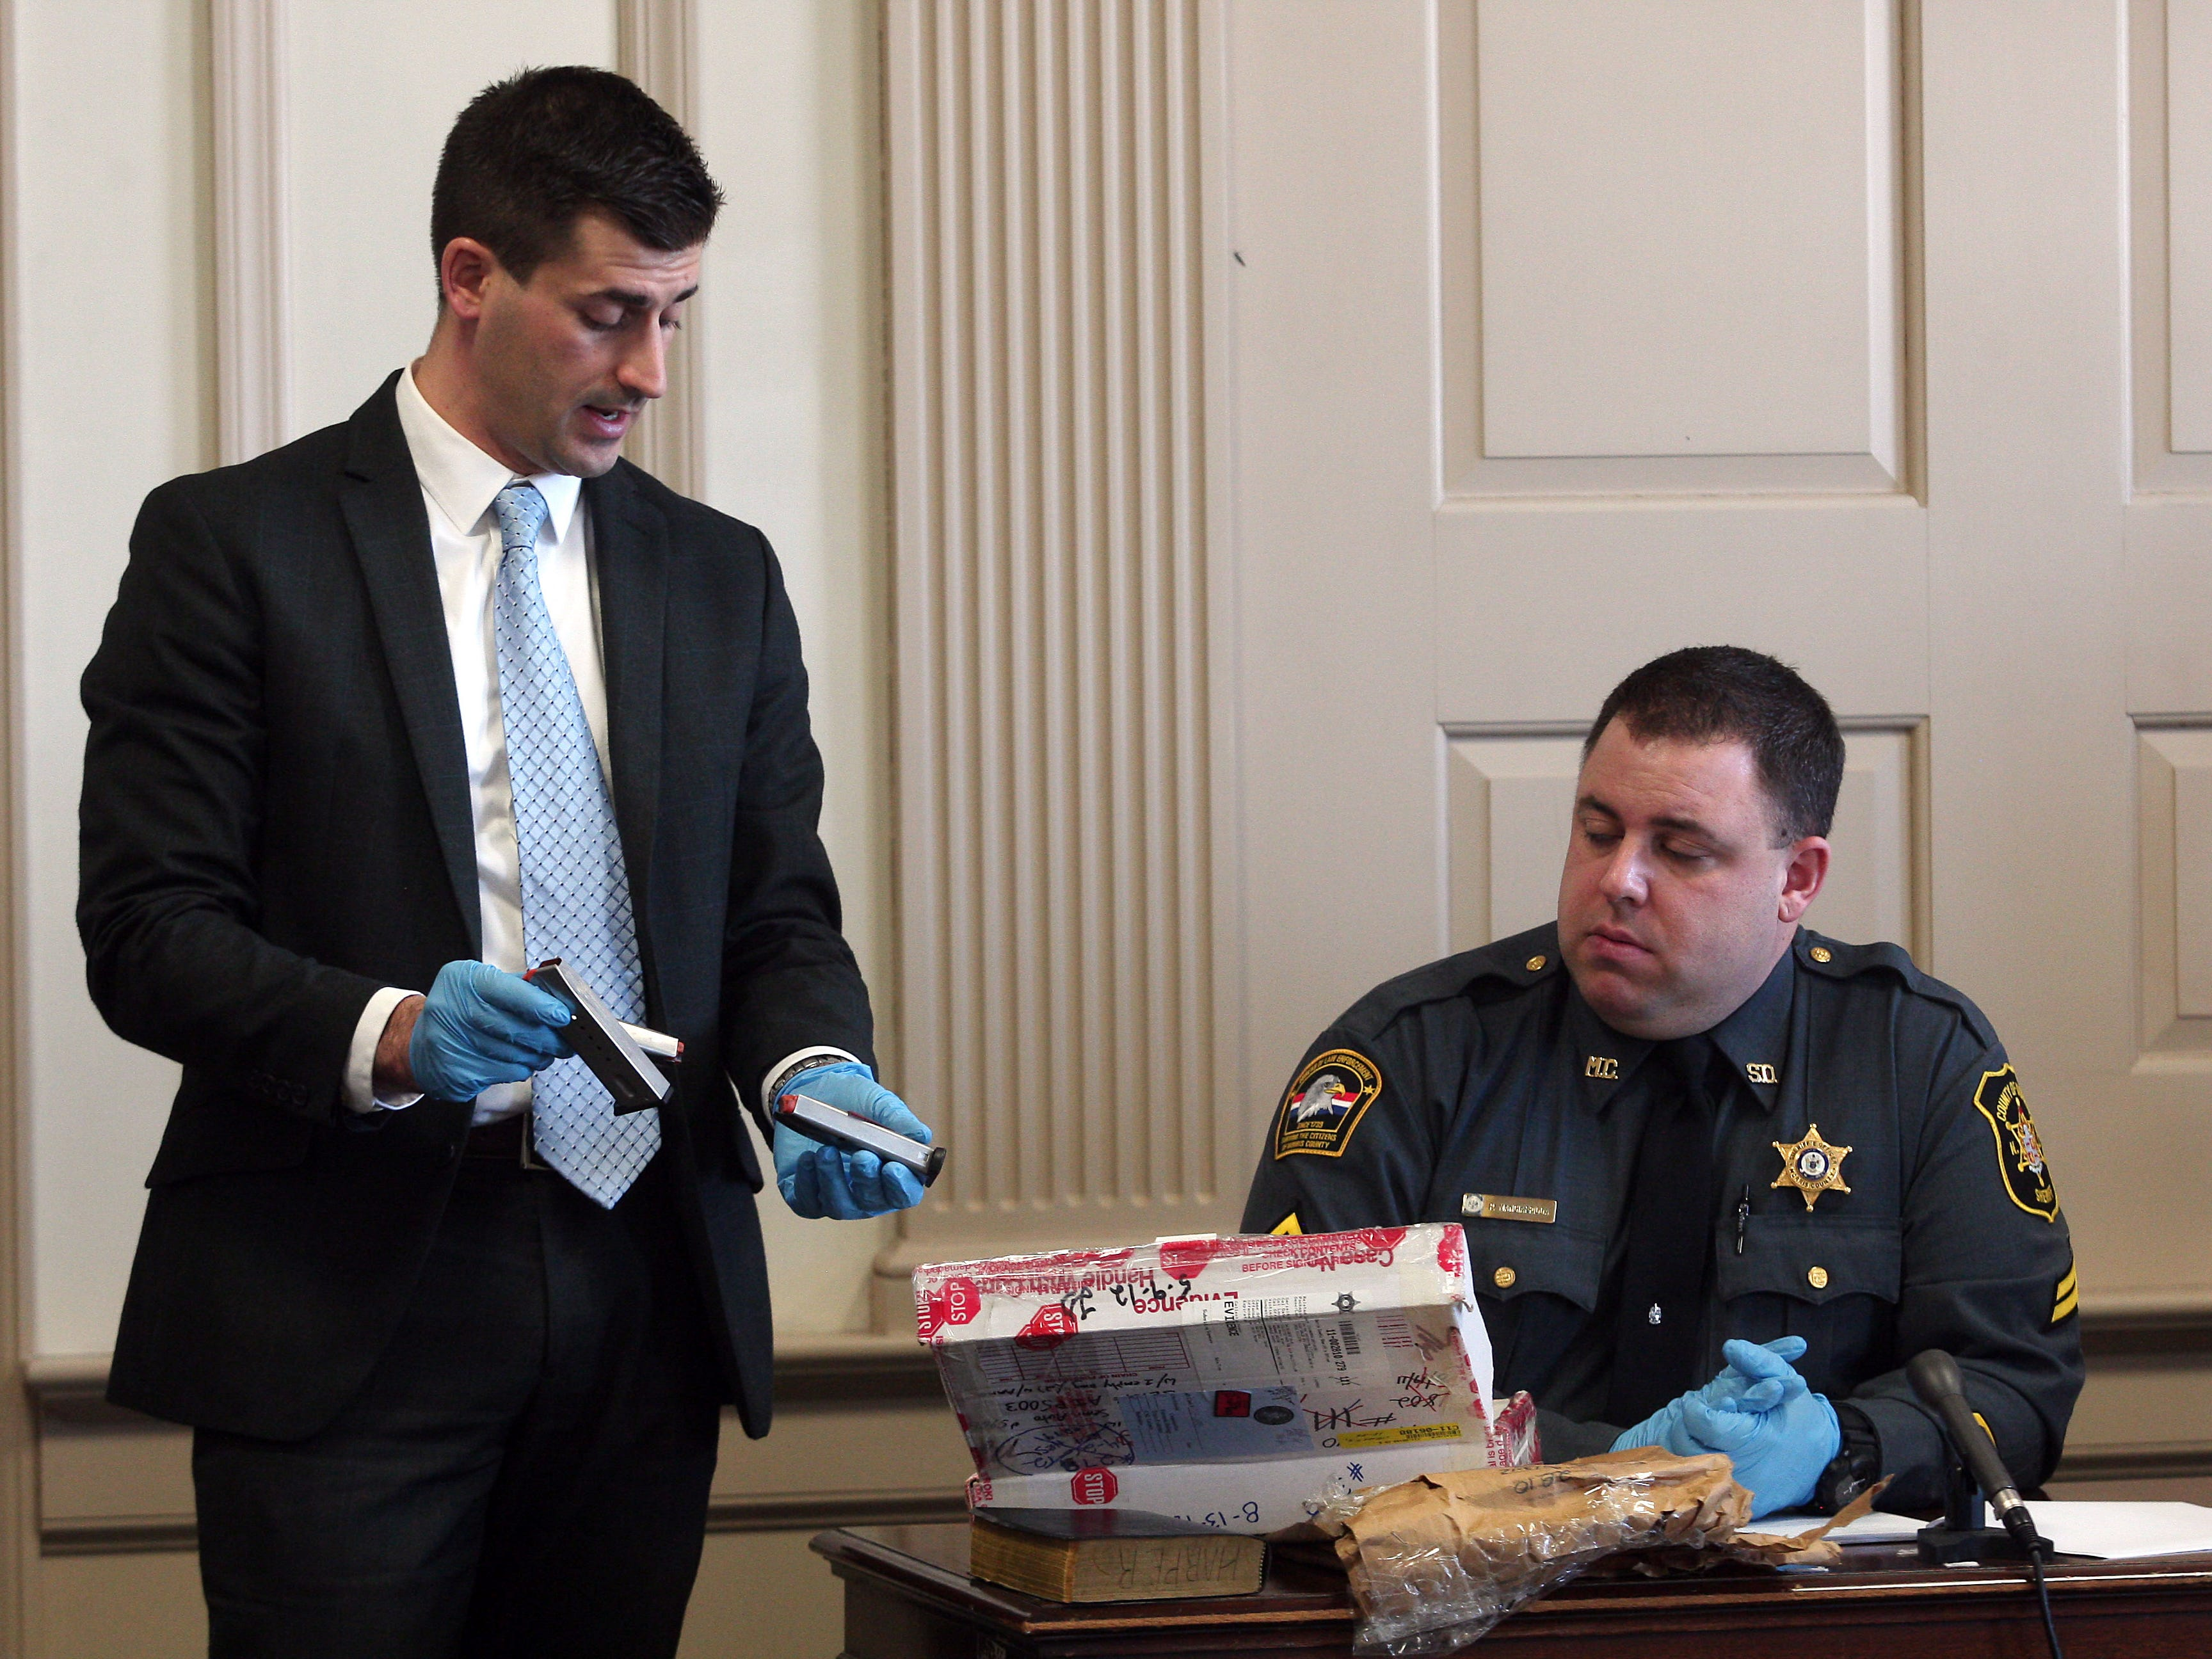 Assistant Prosecutor Matthew Troiano shows magazines found at the residence of Antionette Stephen for identification by Morris County Sheriff Detective Phil Mangiafridda during direct testimony. Stephen pleaded guilty to murder last year and is expected to testify against Kashif Parvaiz in his murder trial, accused of killing his wife Nazish Noorani in August 2011.  February 11, 2015. Morristown, N.J. Bob Karp/Staff Photographer.